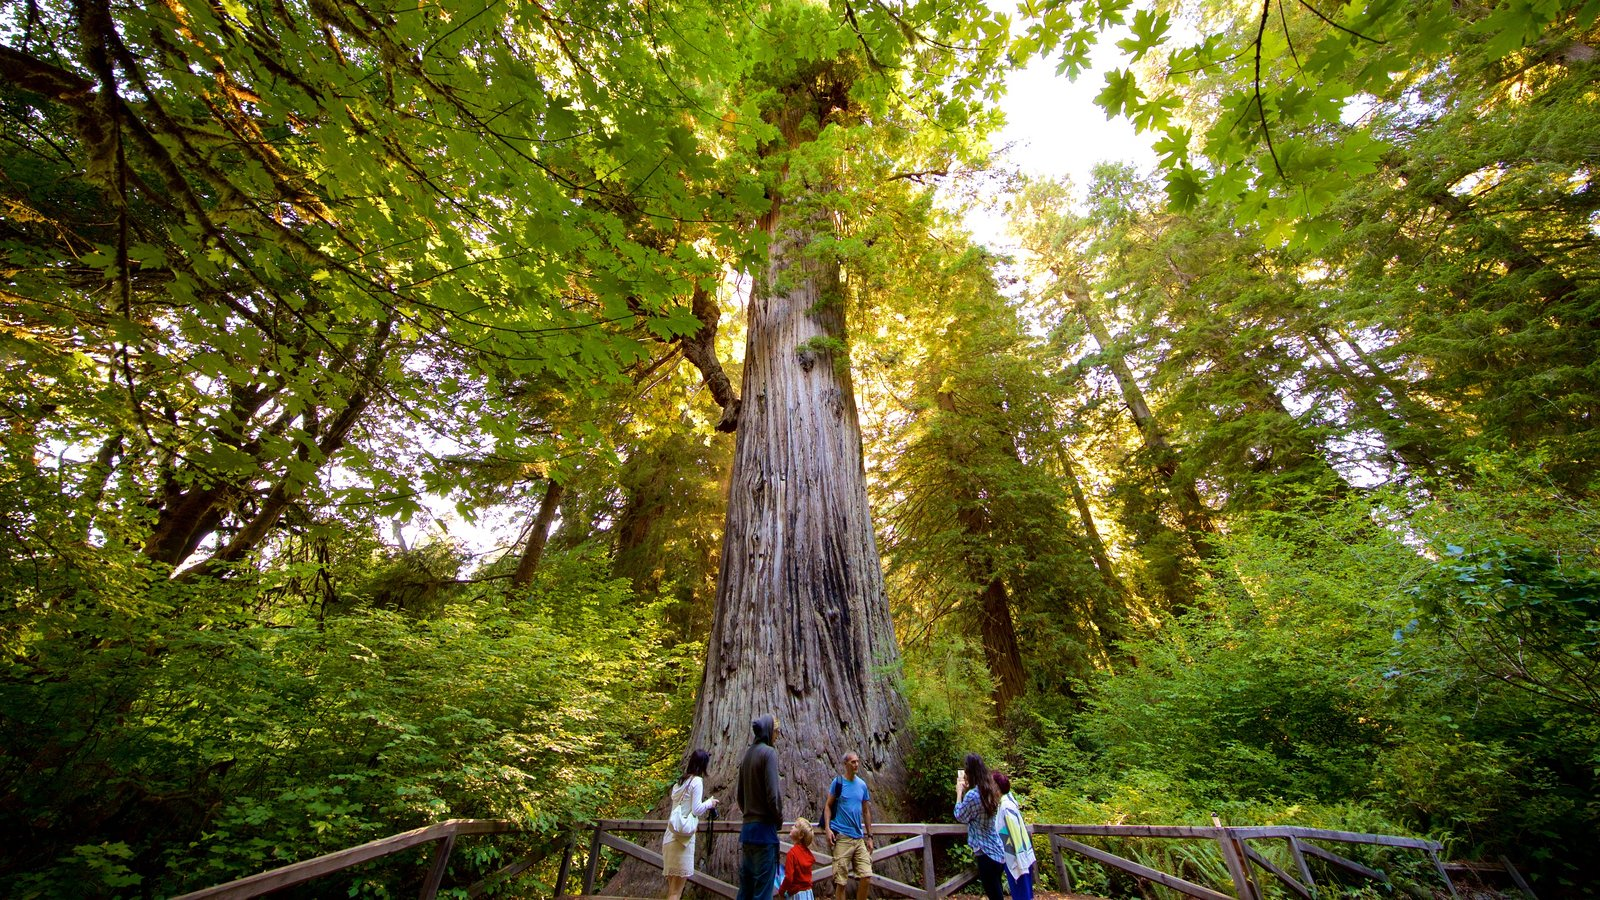 Redwood National and State Parks featuring views and forests as well as a family